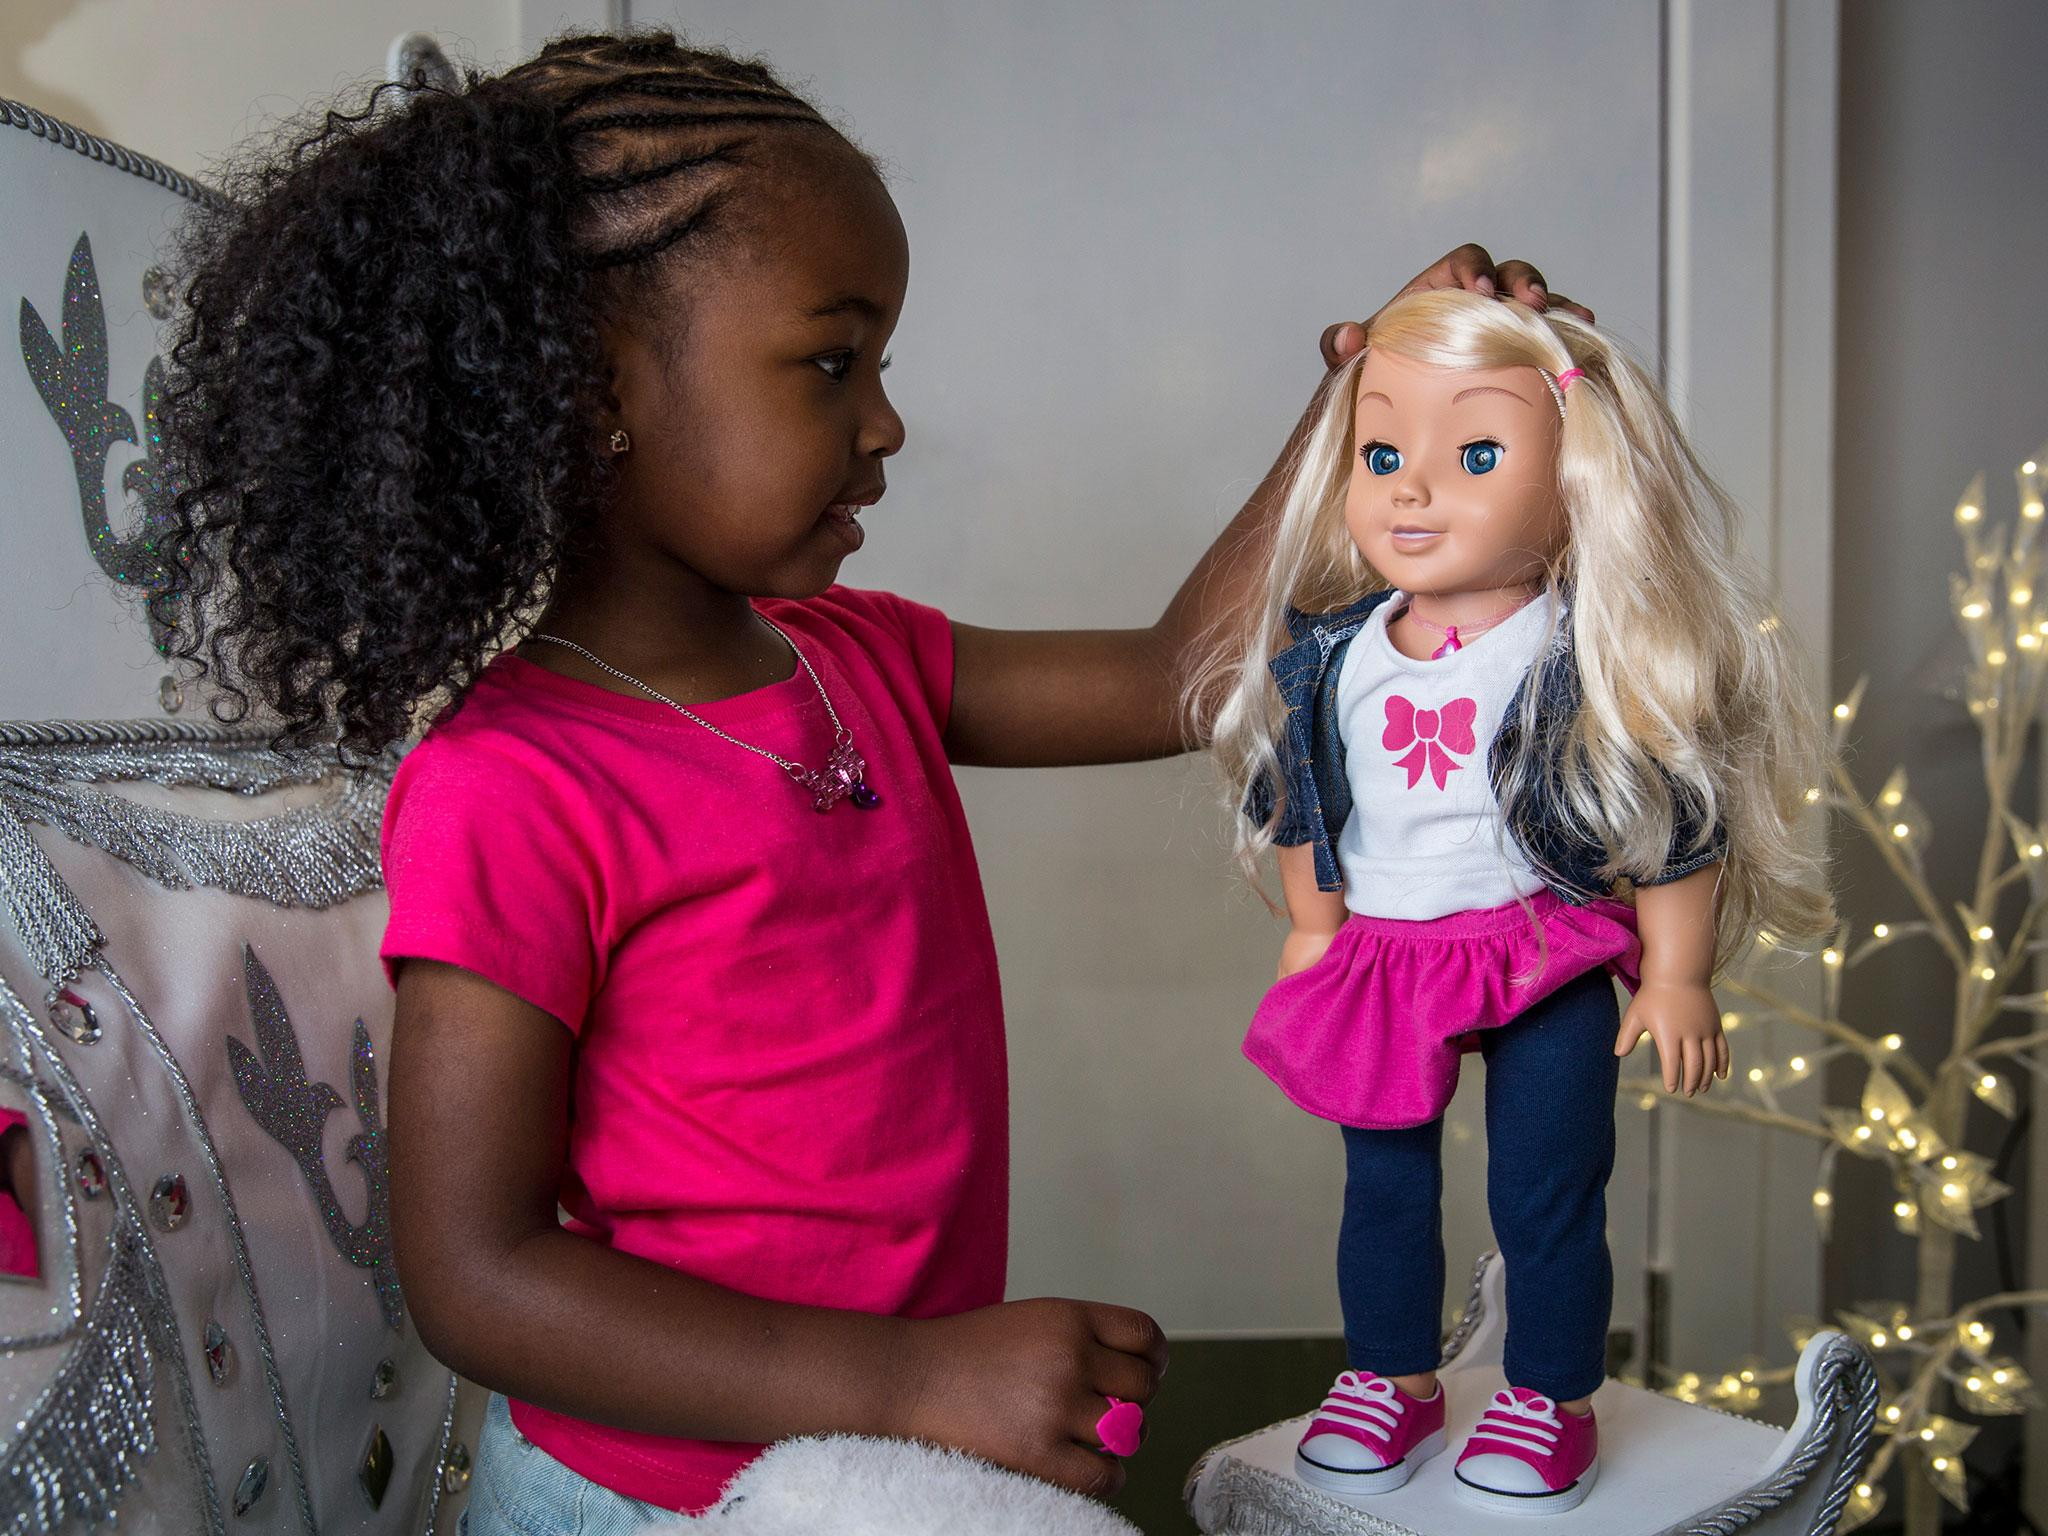 Your Child S Doll Could Be Spying On Them Privacy Group